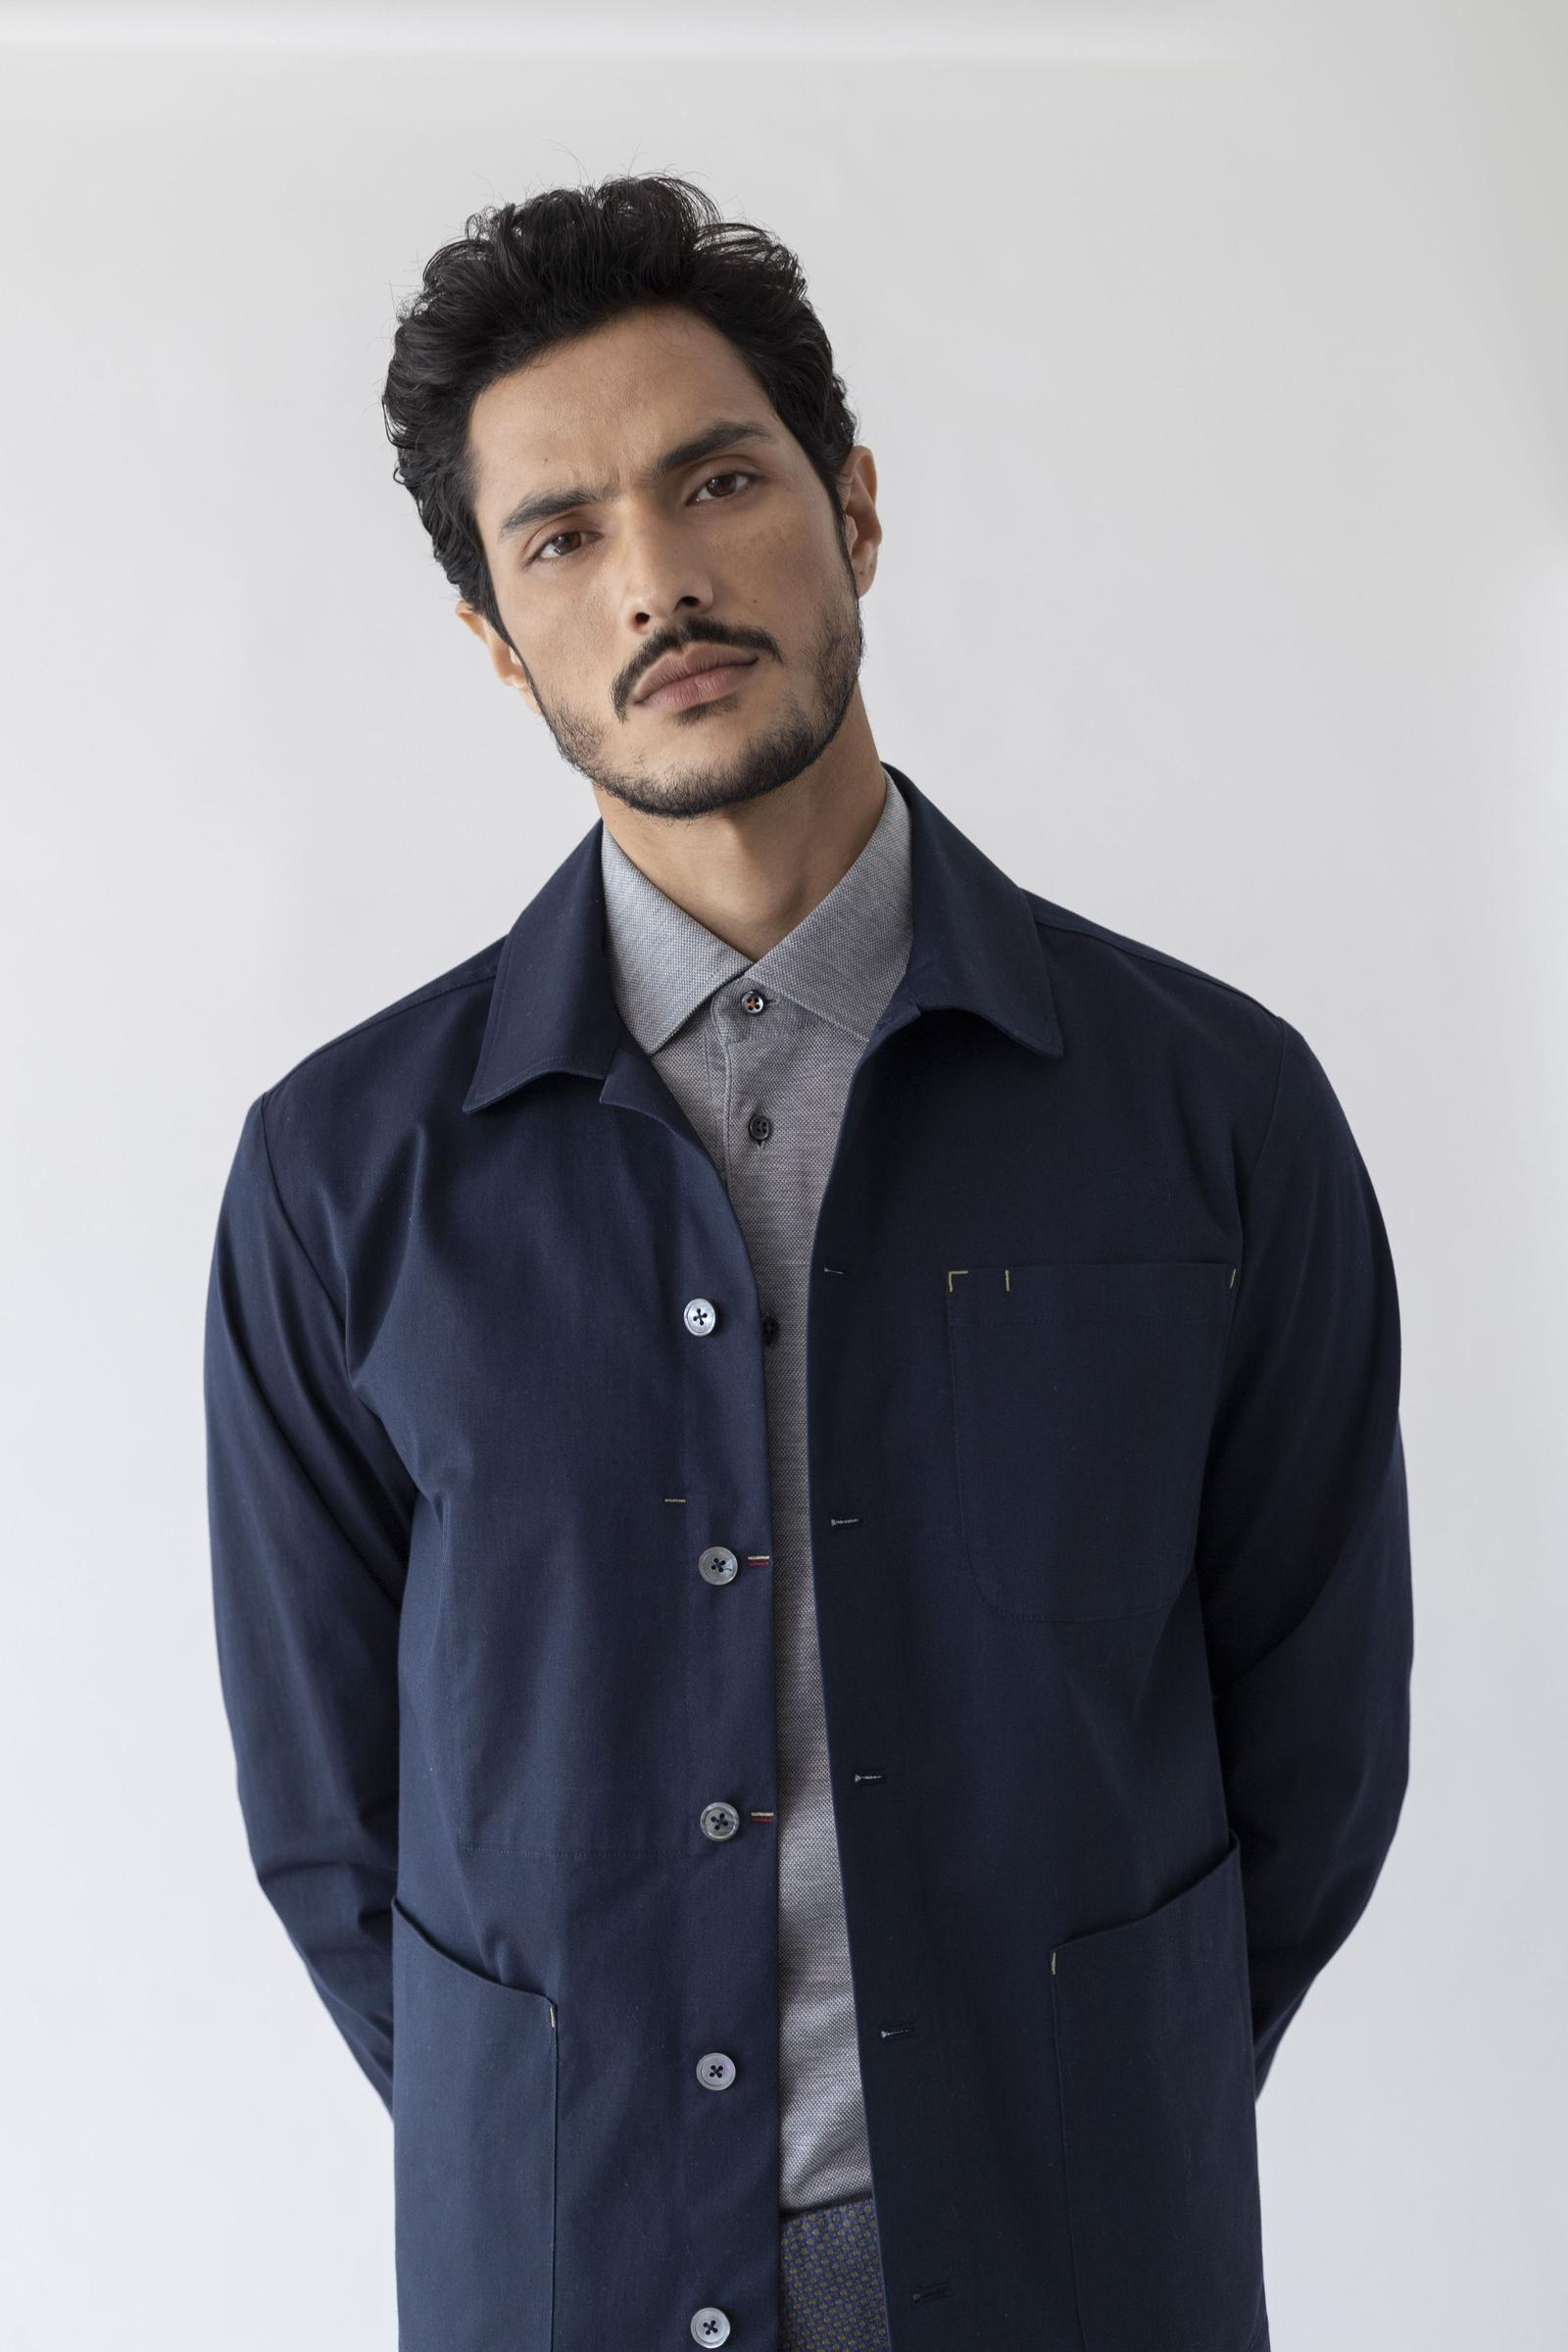 The All Day Masters Jacket - Navy Cotton